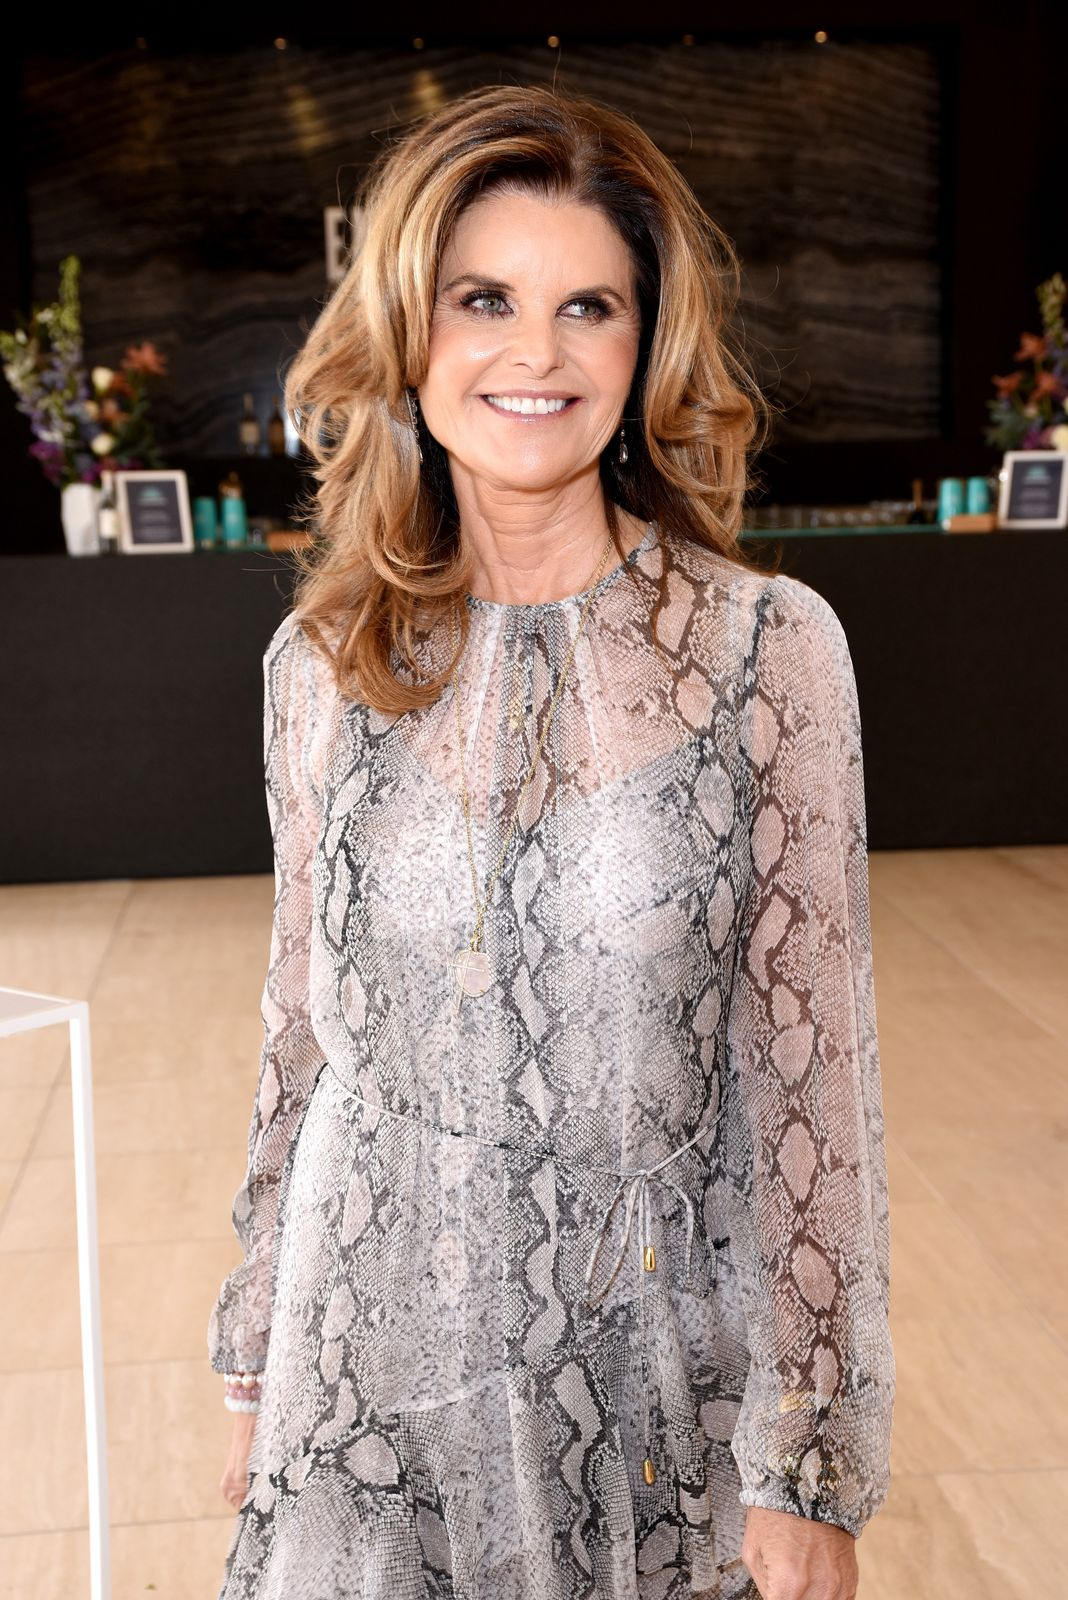 Maria Shriver at The Hollywood Reporter's Empowerment In Entertainment Event on April 30, 2019, in Los Angeles, California | Photo: Presley Ann/Getty Images